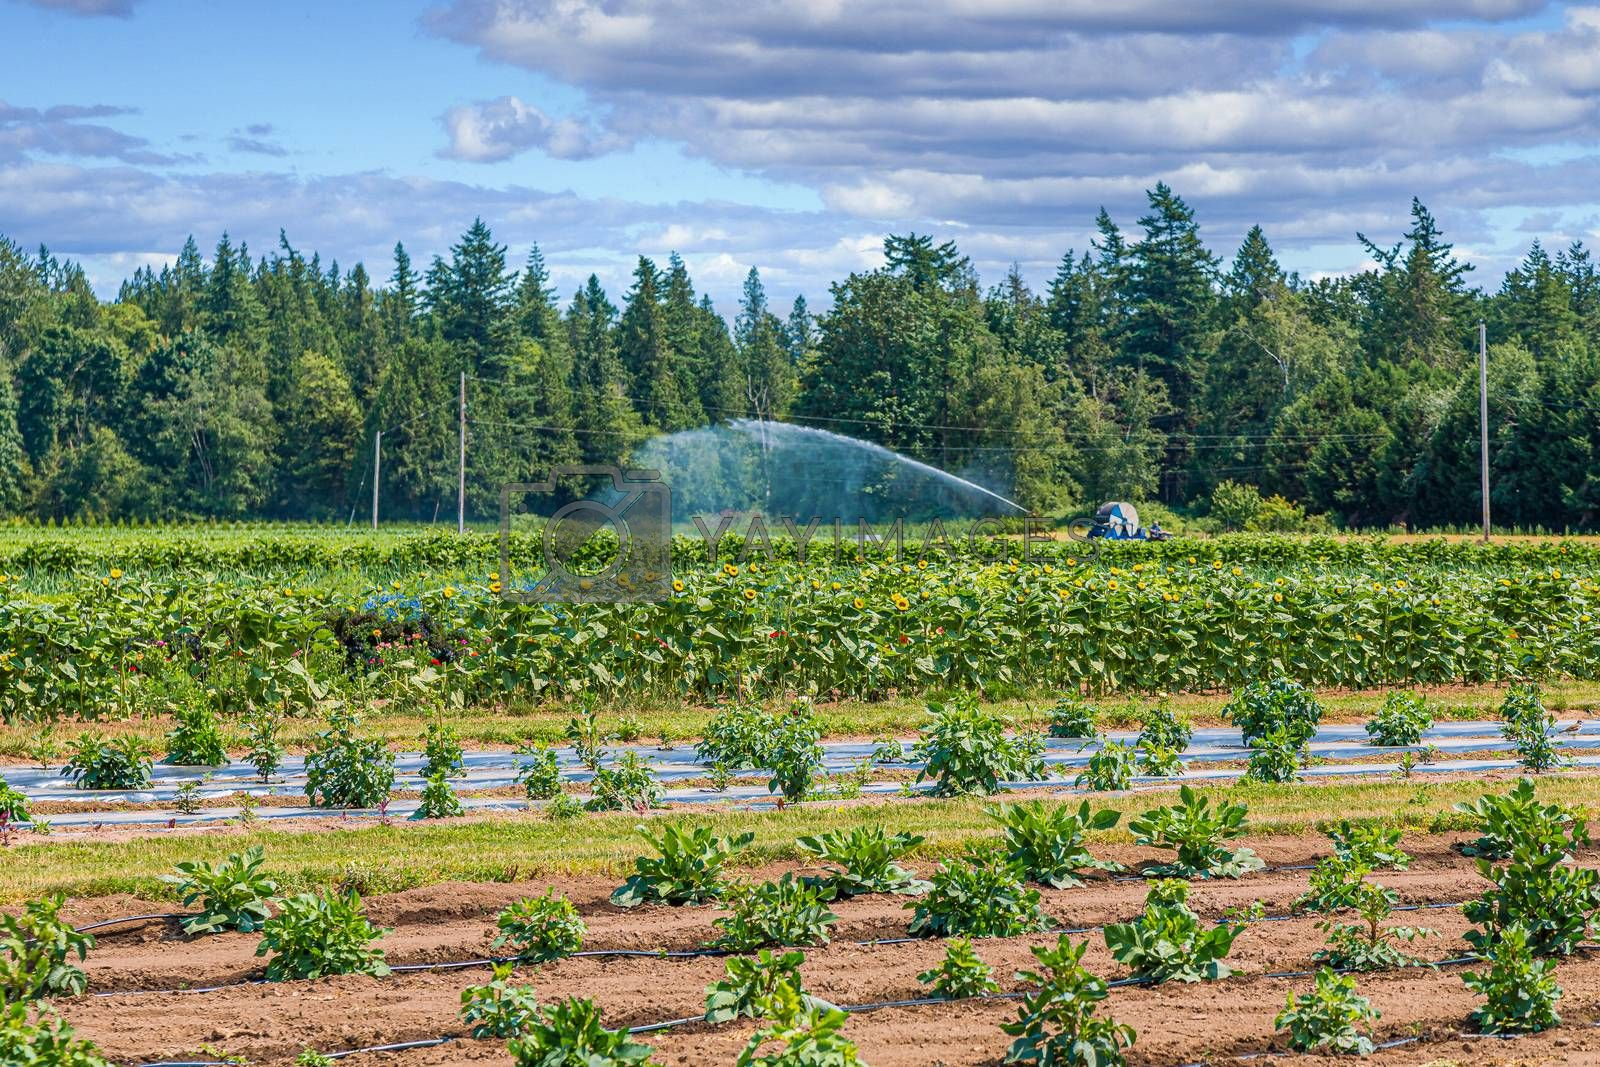 Irrigating a Flower Farm in the Pacific Northwest